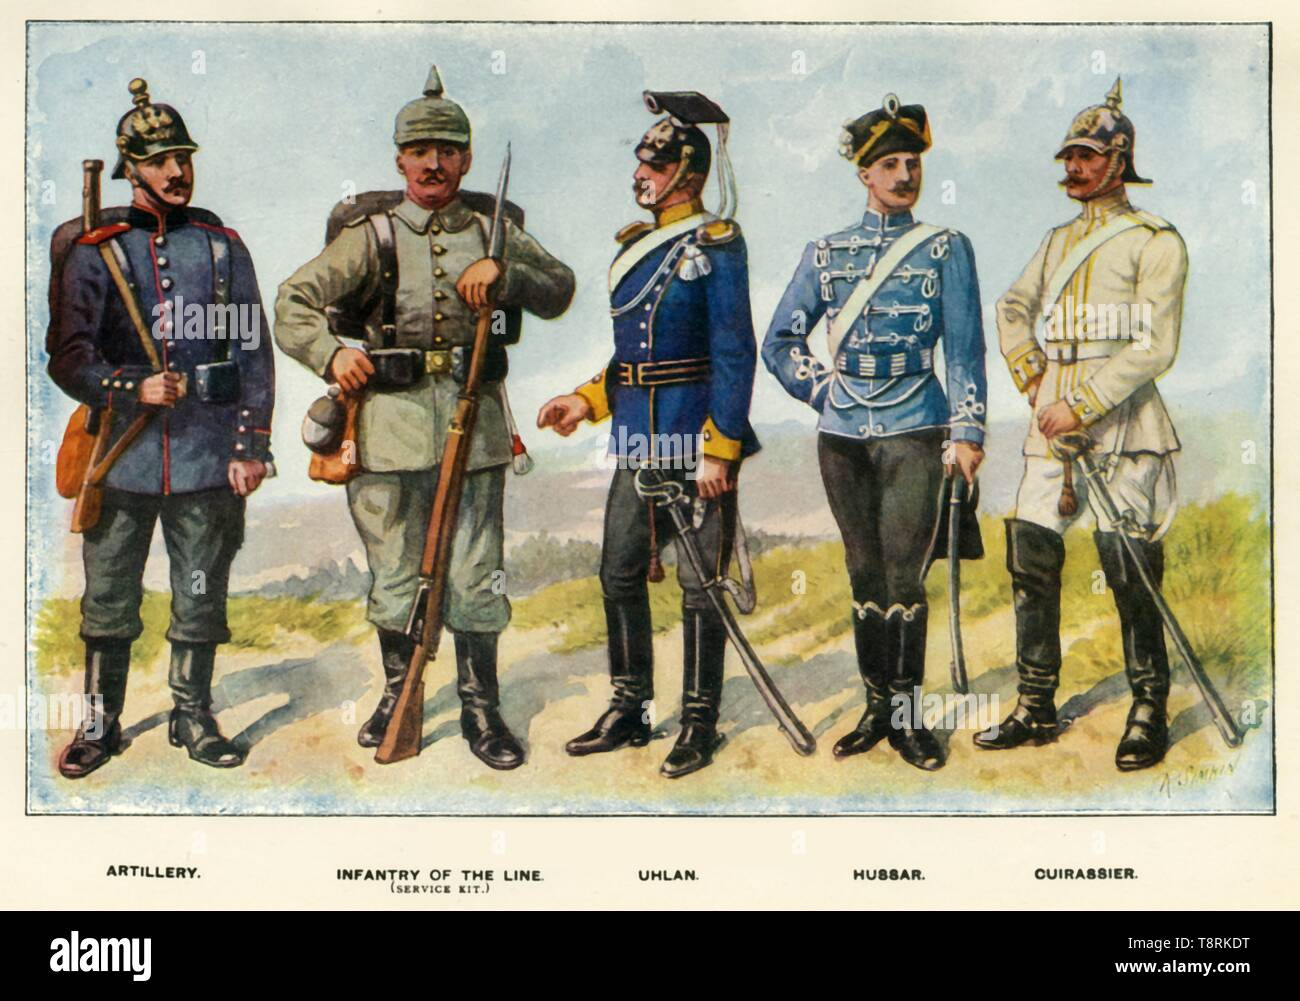 """'Types of the German Army', 1919. Soldiers serving during the First World War, 1914-1919: Artillery, Infantry of the Line (service kit), Uhlan, Hussar, Cuirassier. From """"The History of the Great European War: its causes and effects"""", Vol. I, by W. Stanley Macbean Knight. [Caxton Pulishing Company, Limited, London, 1919] - Stock Image"""